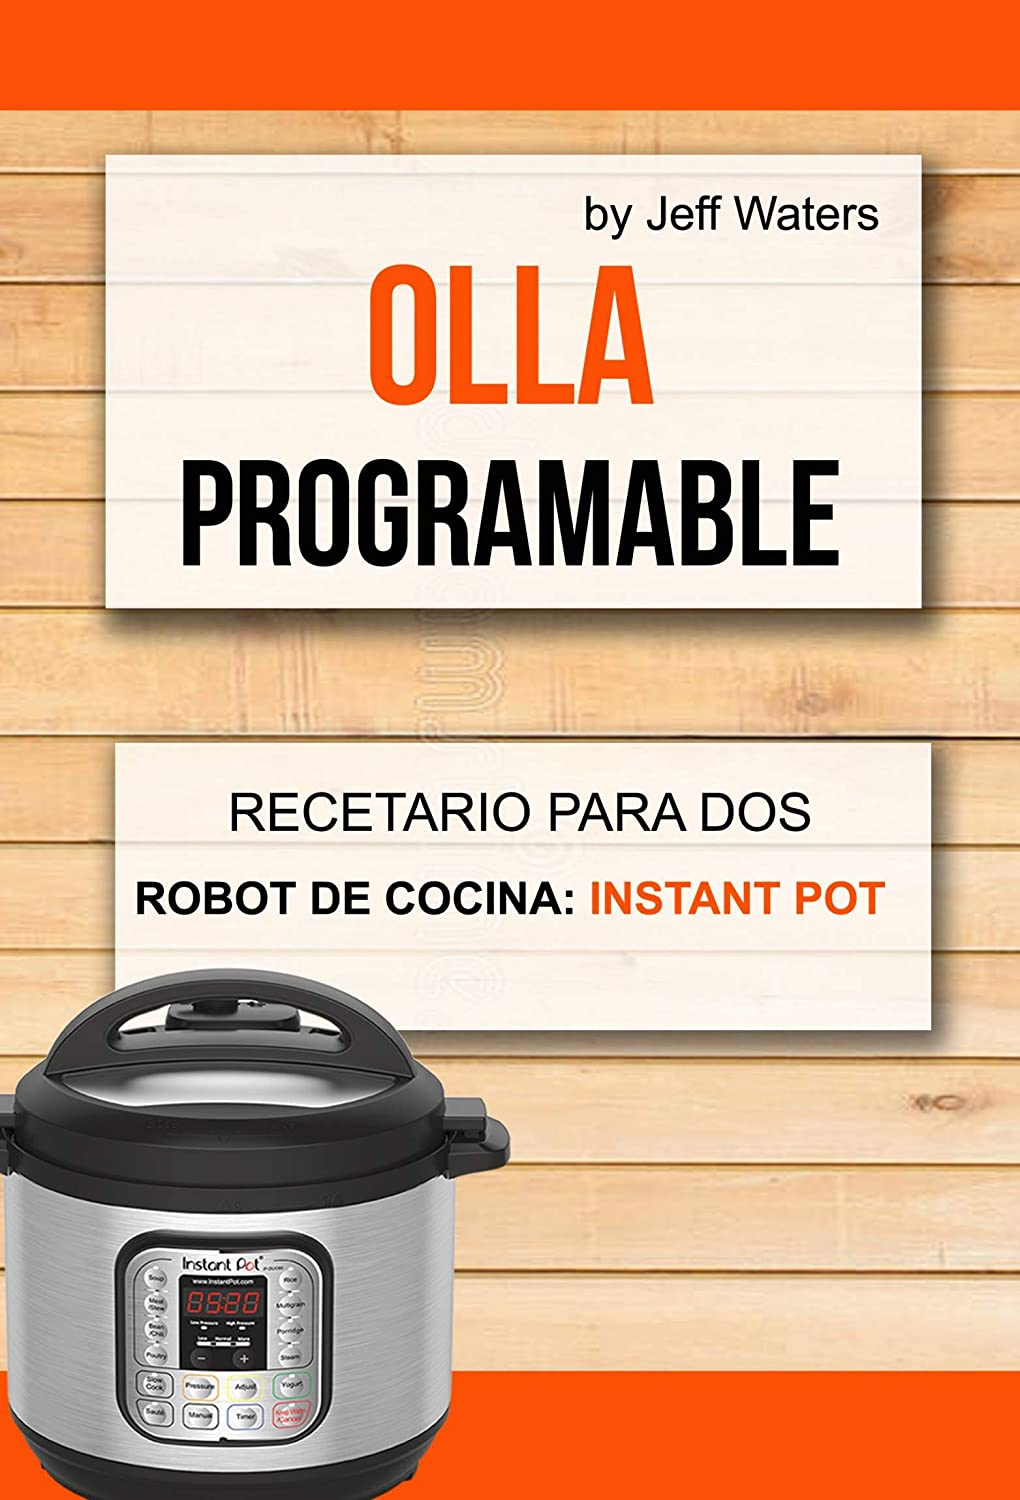 Olla programable: Recetario Para Dos (Robot de cocina: Instant Pot) eBook: Waters, Jeff, Guaita Vallenilla, Stanlyn: Amazon.es: Tienda Kindle